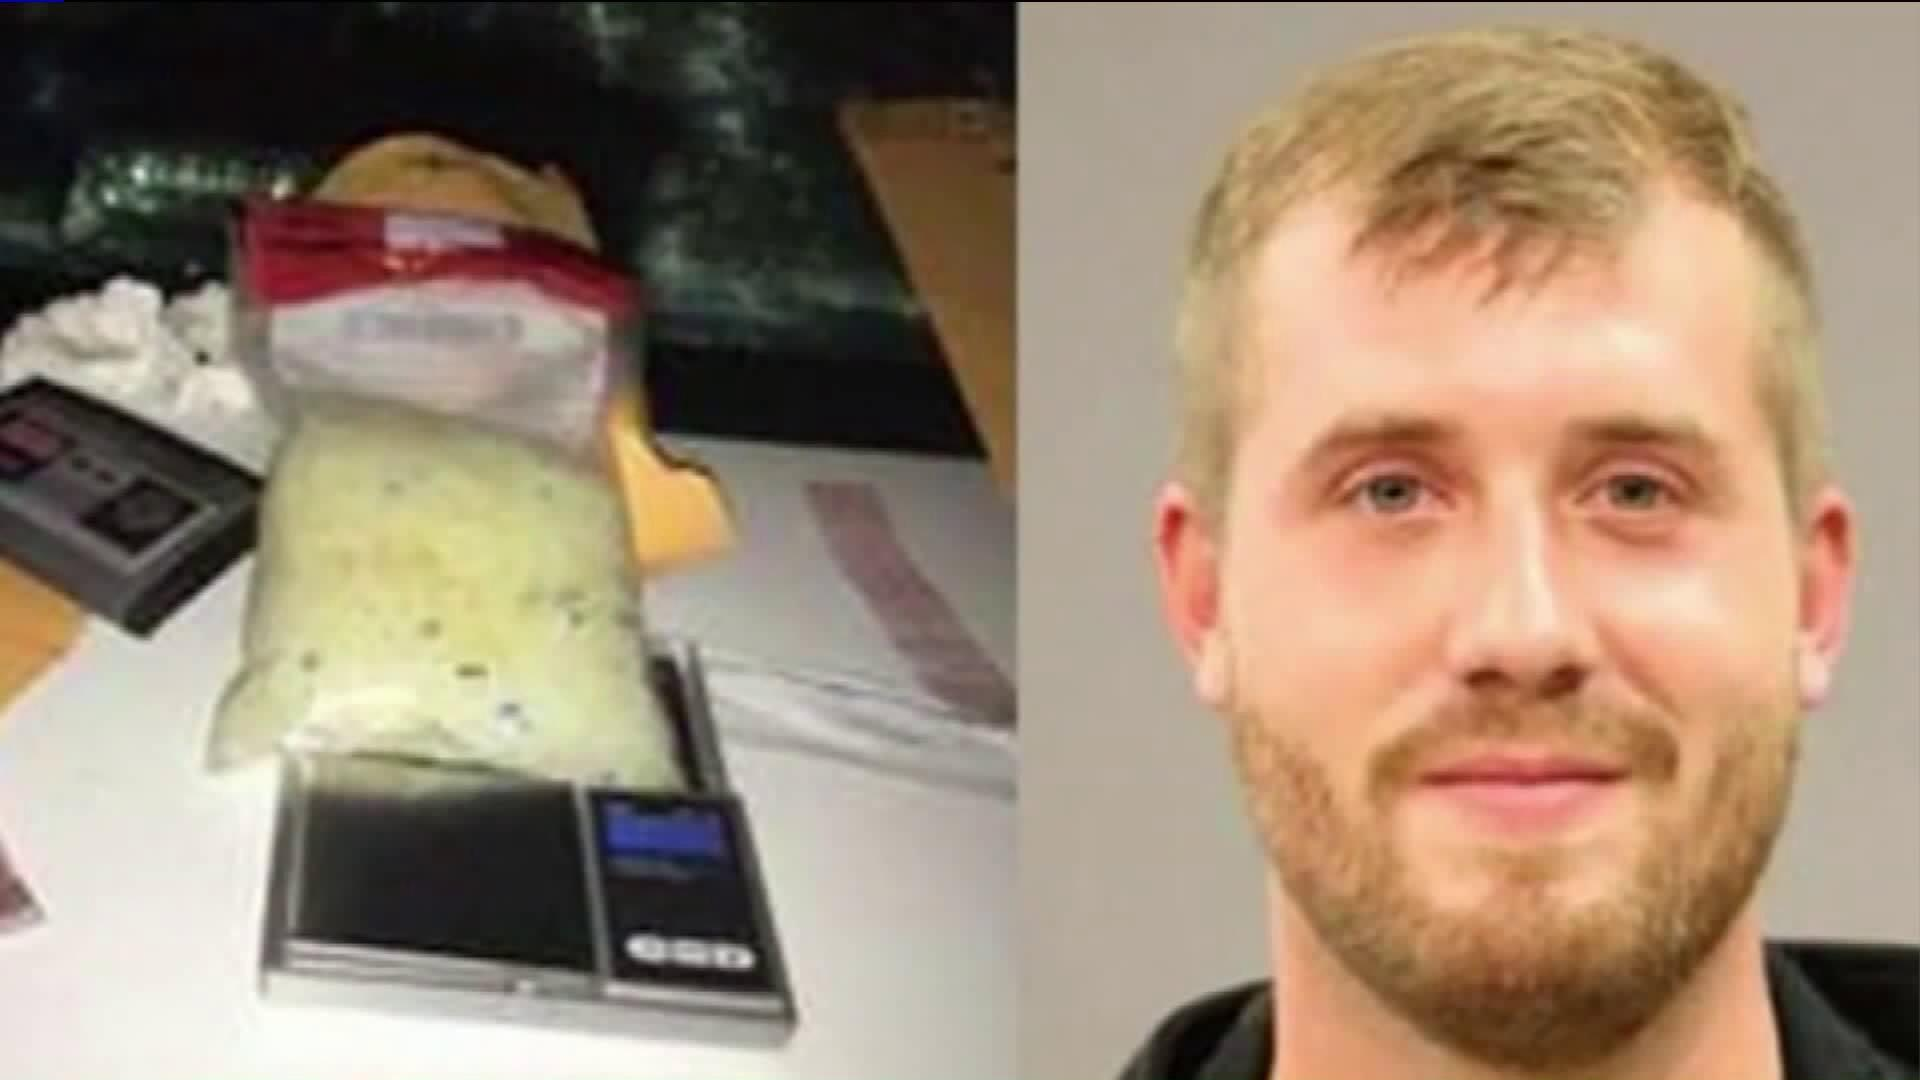 Man Jailed In 'Bust Of The Year' After Cops Mistake Cat Litter For Meth